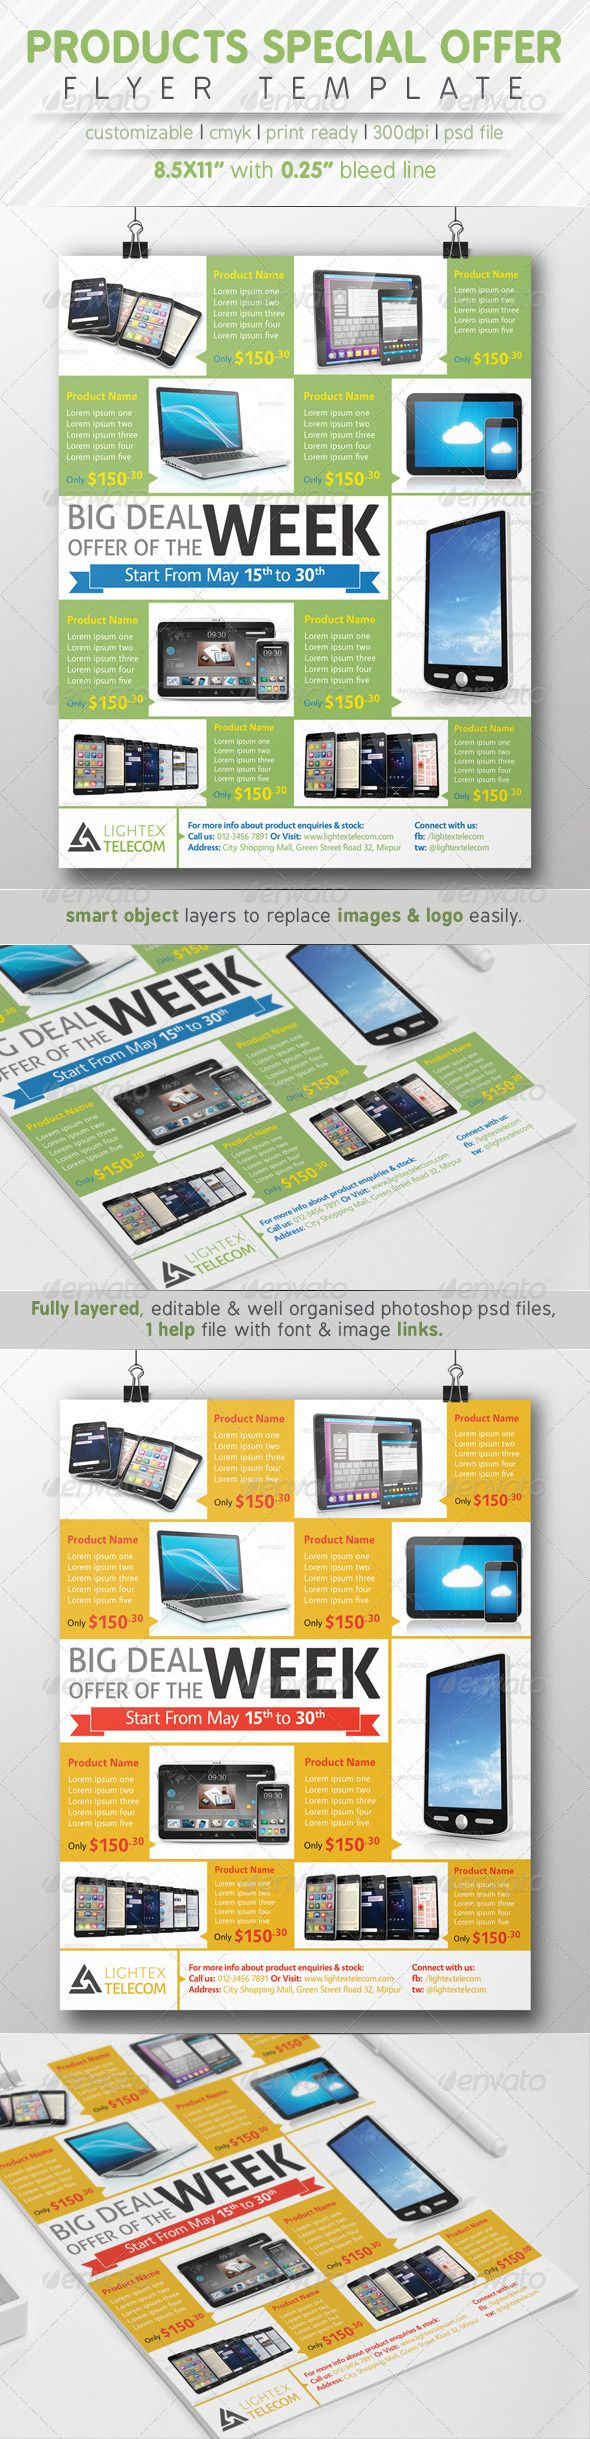 best images about promotion products banner product promotion flyer ads